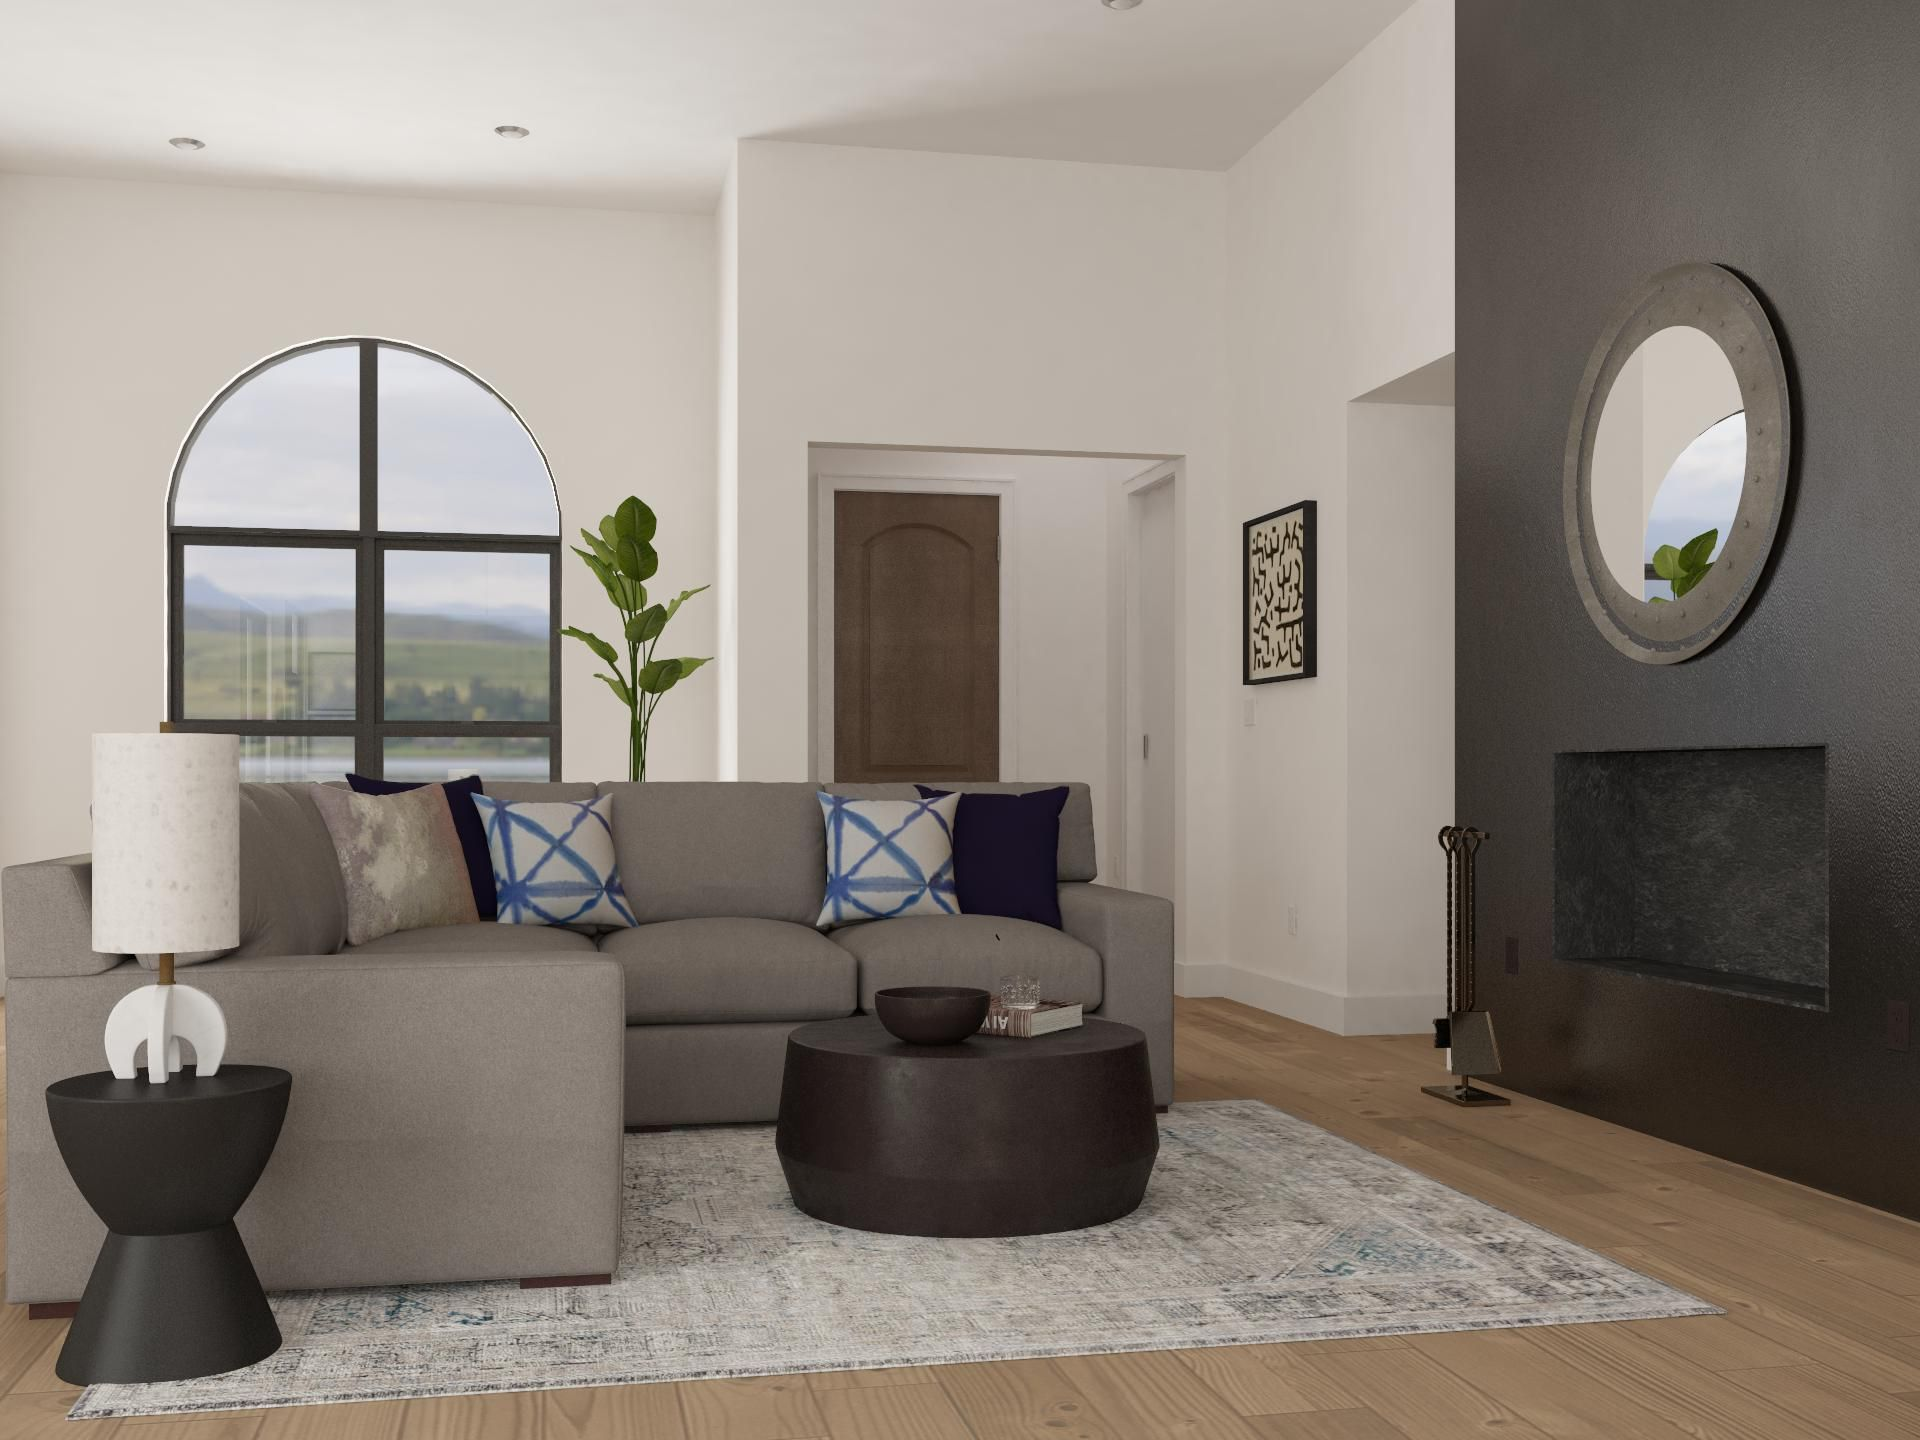 11 Ways To Lay Out A Living Room With Fireplace Design Modsy Blog In 2020 Living Room With Fireplace Contemporary Living Room Design Fireplace Design